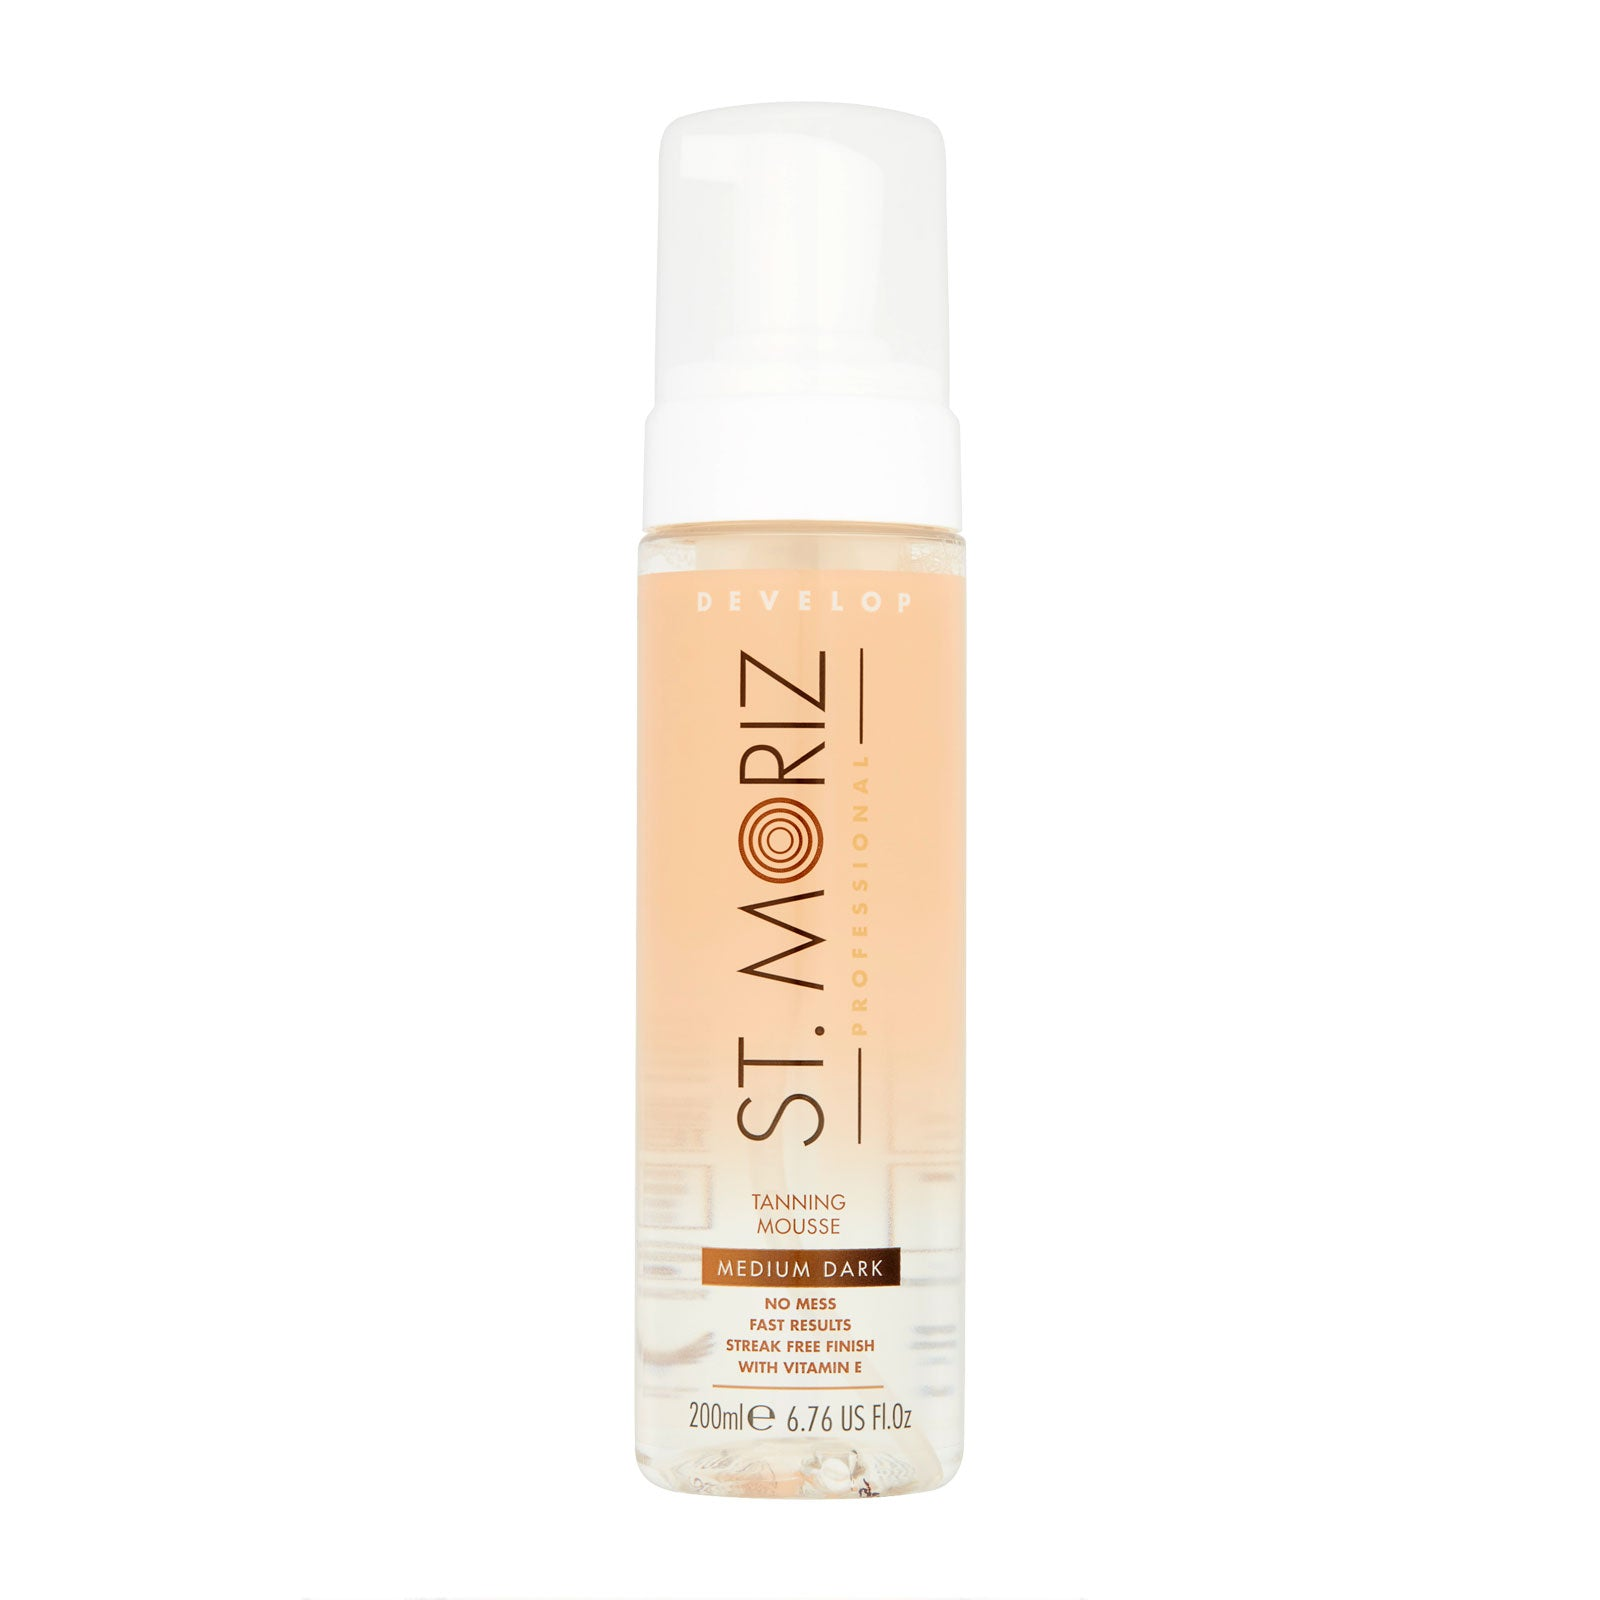 St. Moriz Professional Clear Tanning Mousse Medium Dark 200ml